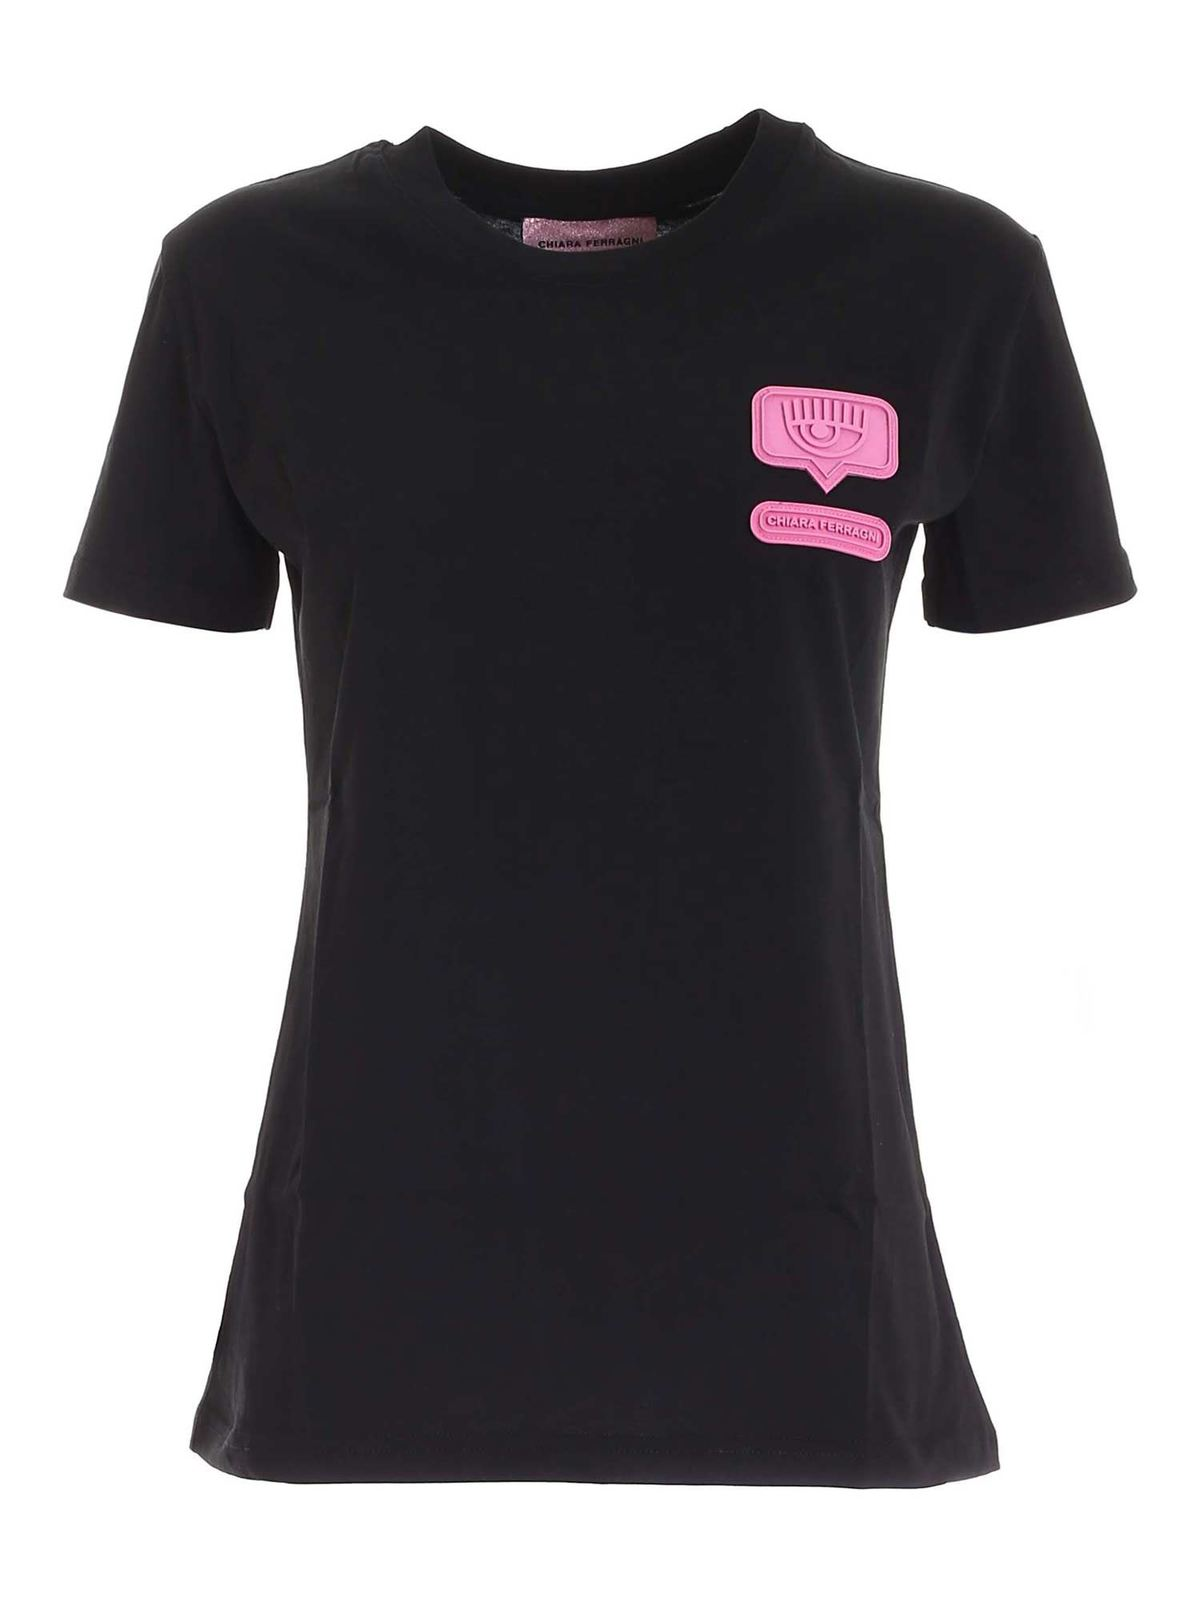 Chiara Ferragni EYELIKE T-SHIRT IN BLACK